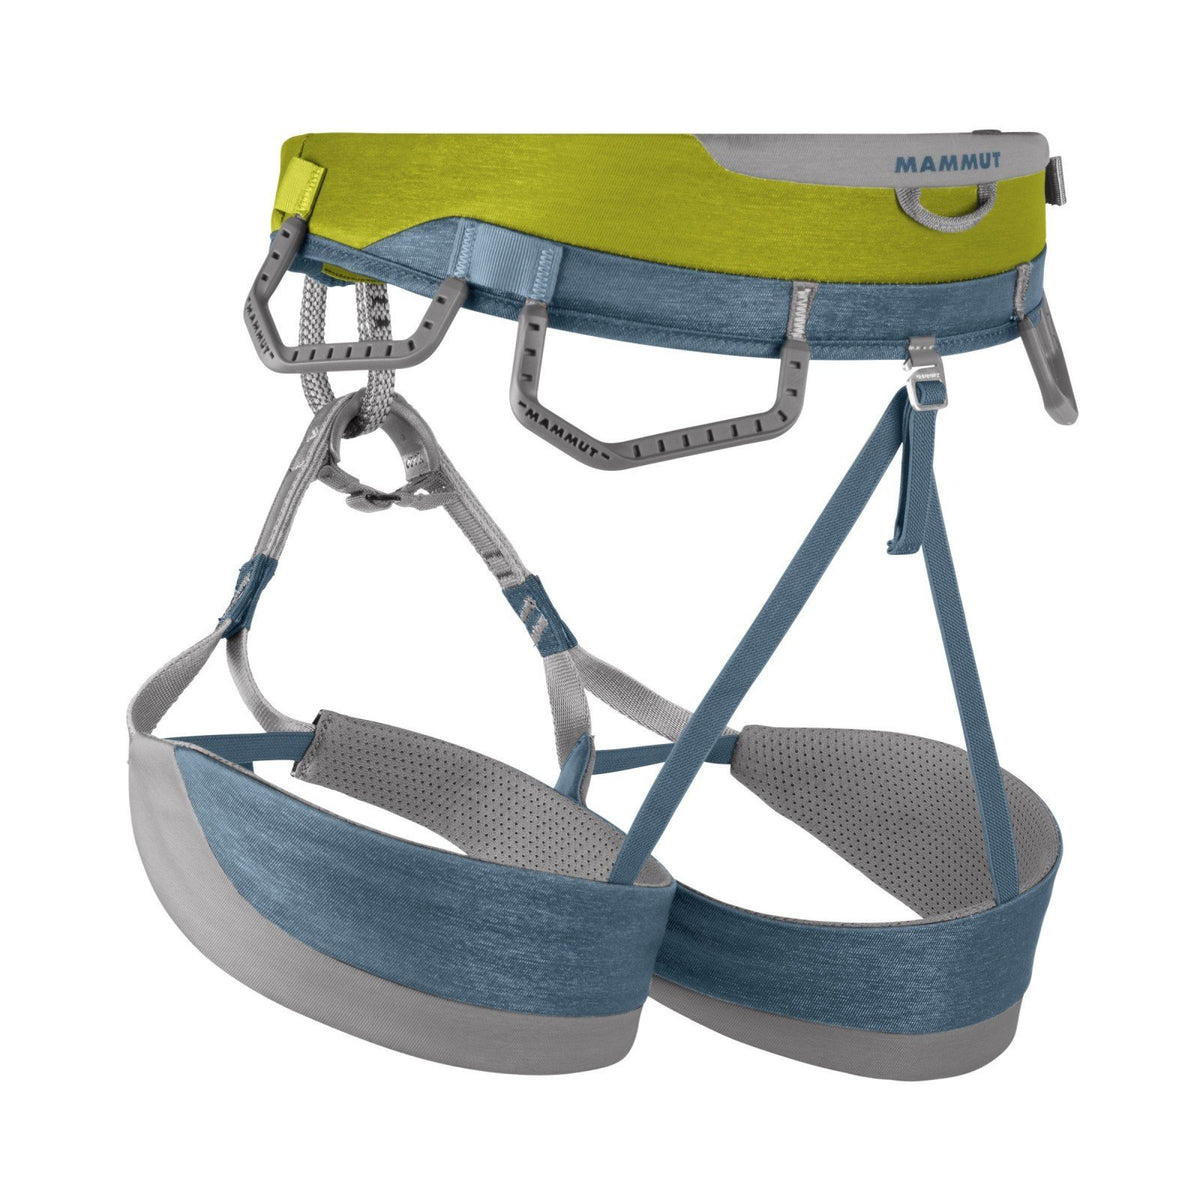 Mammut Togir Harness, rear/side view